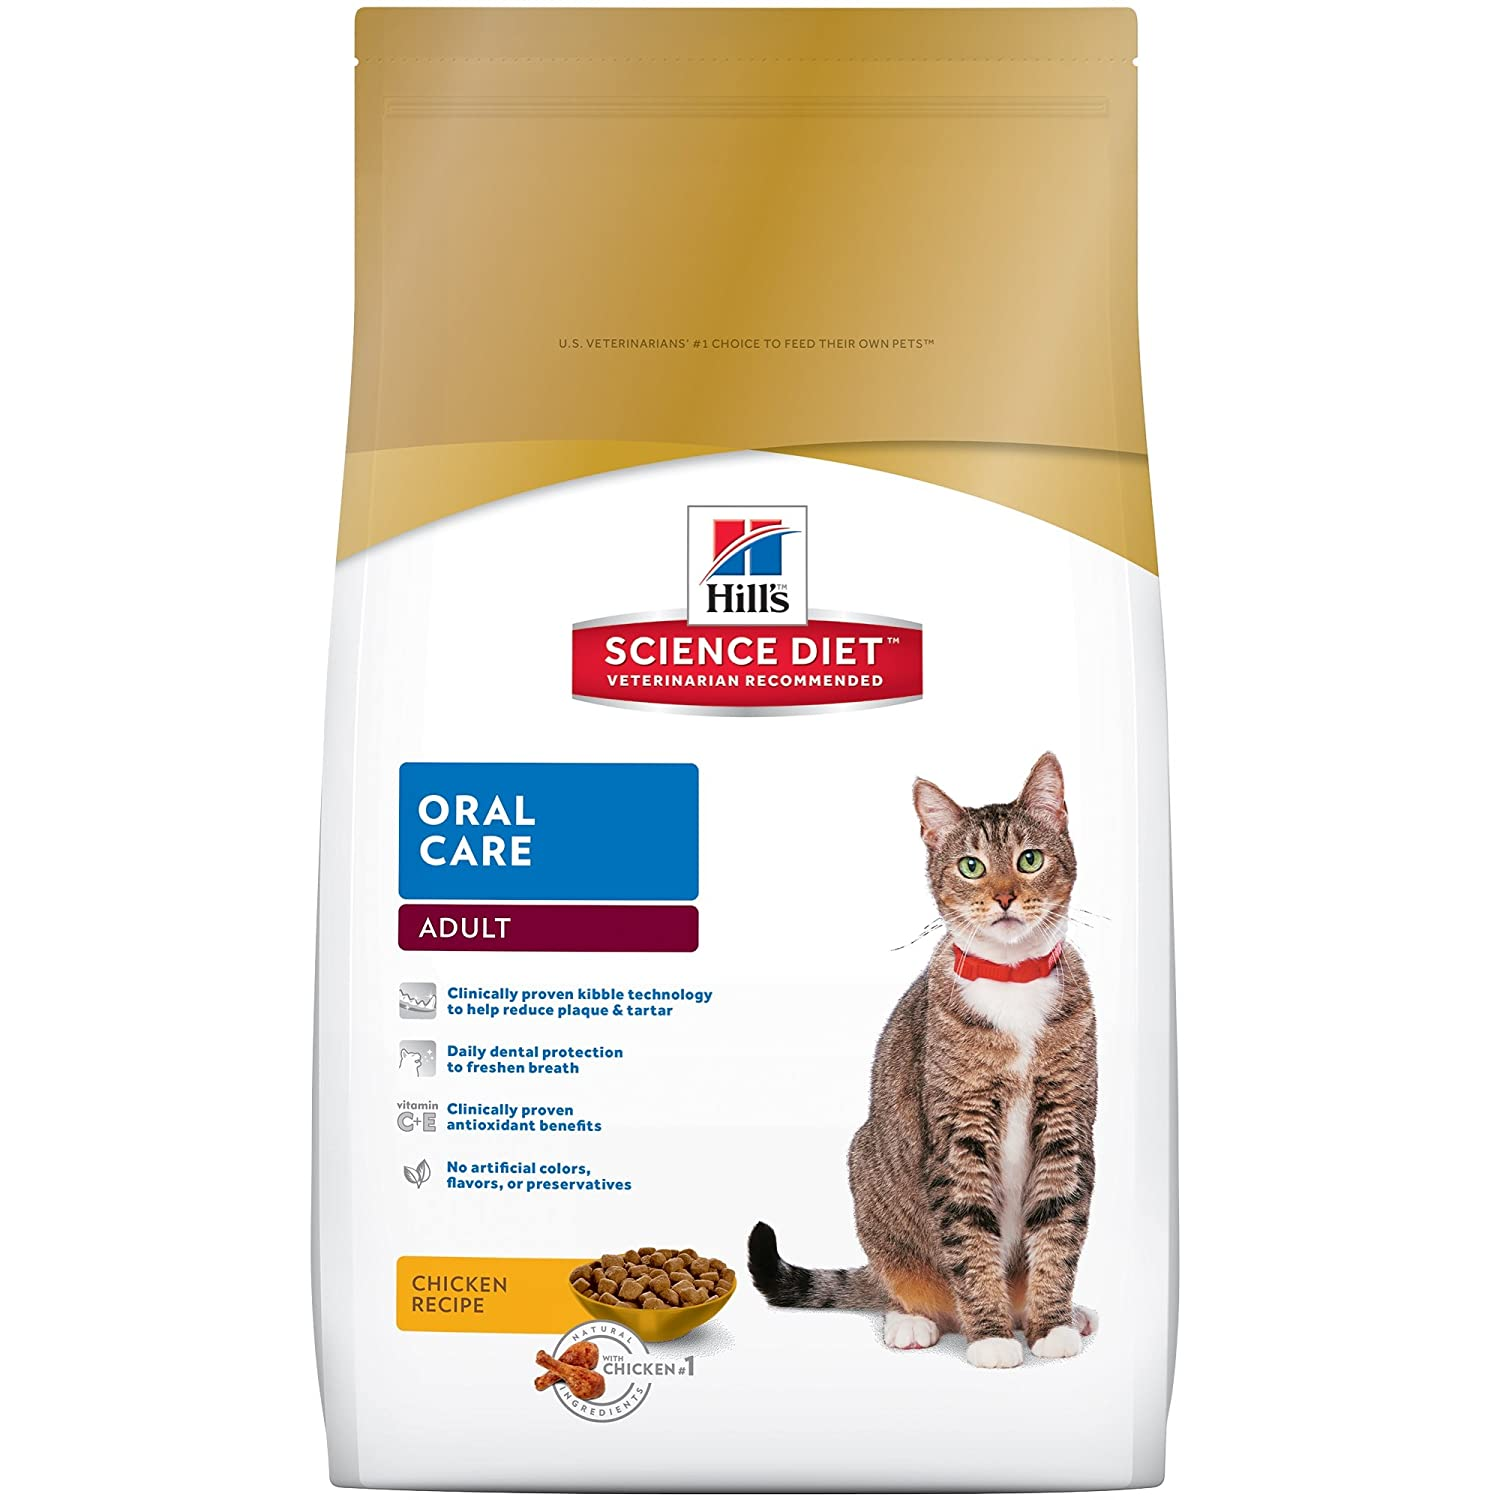 Food Cats Pet Supplies Dry Pouches Canned Fancy Feast Grilled Tuna In Gravy 85g 6 Pcs Free Pouch Hills Science Diet Adult Oral Care Cat Chicken Recipe For Dental